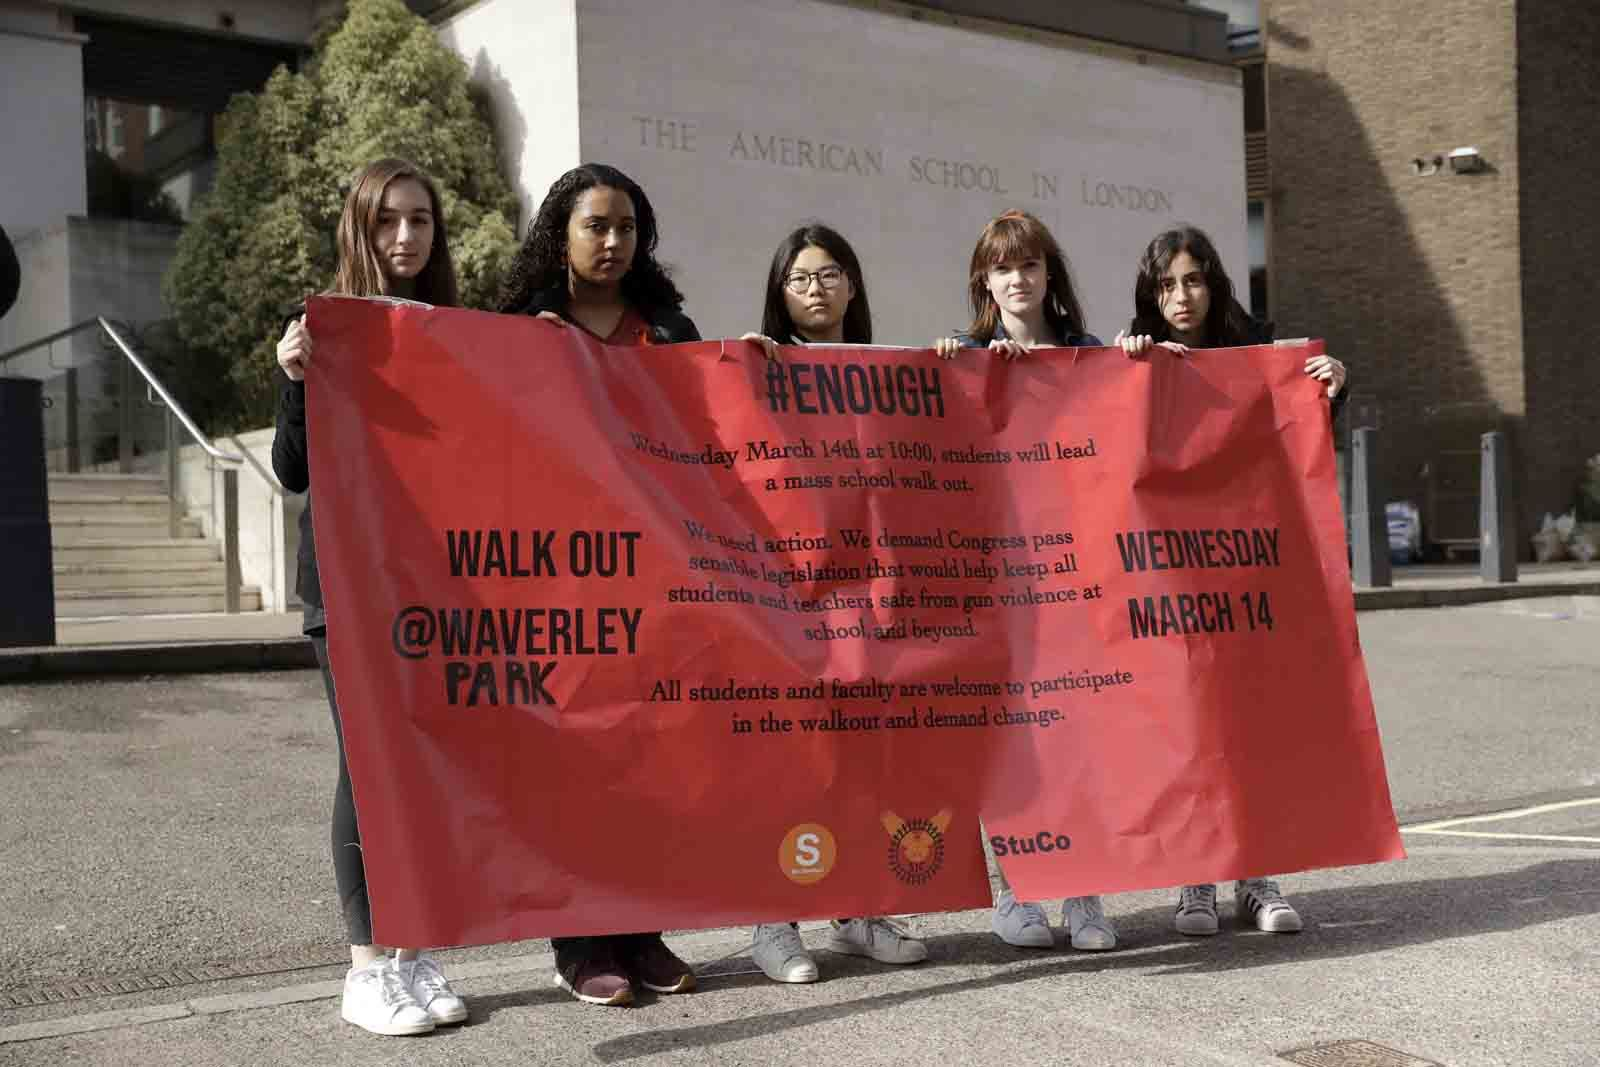 Students, aged 17 & 18, pose for photographs with a banner outside the front of the American School in London, after taking part in a 10am local-time, 17-minute walkout in the school playground, which was attended by approximately 300 students aged 14-18, Wednesday, March 14, 2018. From Maine to Hawaii, students planned to walk out of school Wednesday to protest gun violence in the biggest demonstration yet of the student activism that has emerged in response to last month's massacre of 17 people at Florida's Marjory Stoneman Douglas High School. (AP Photo/Matt Dunham)